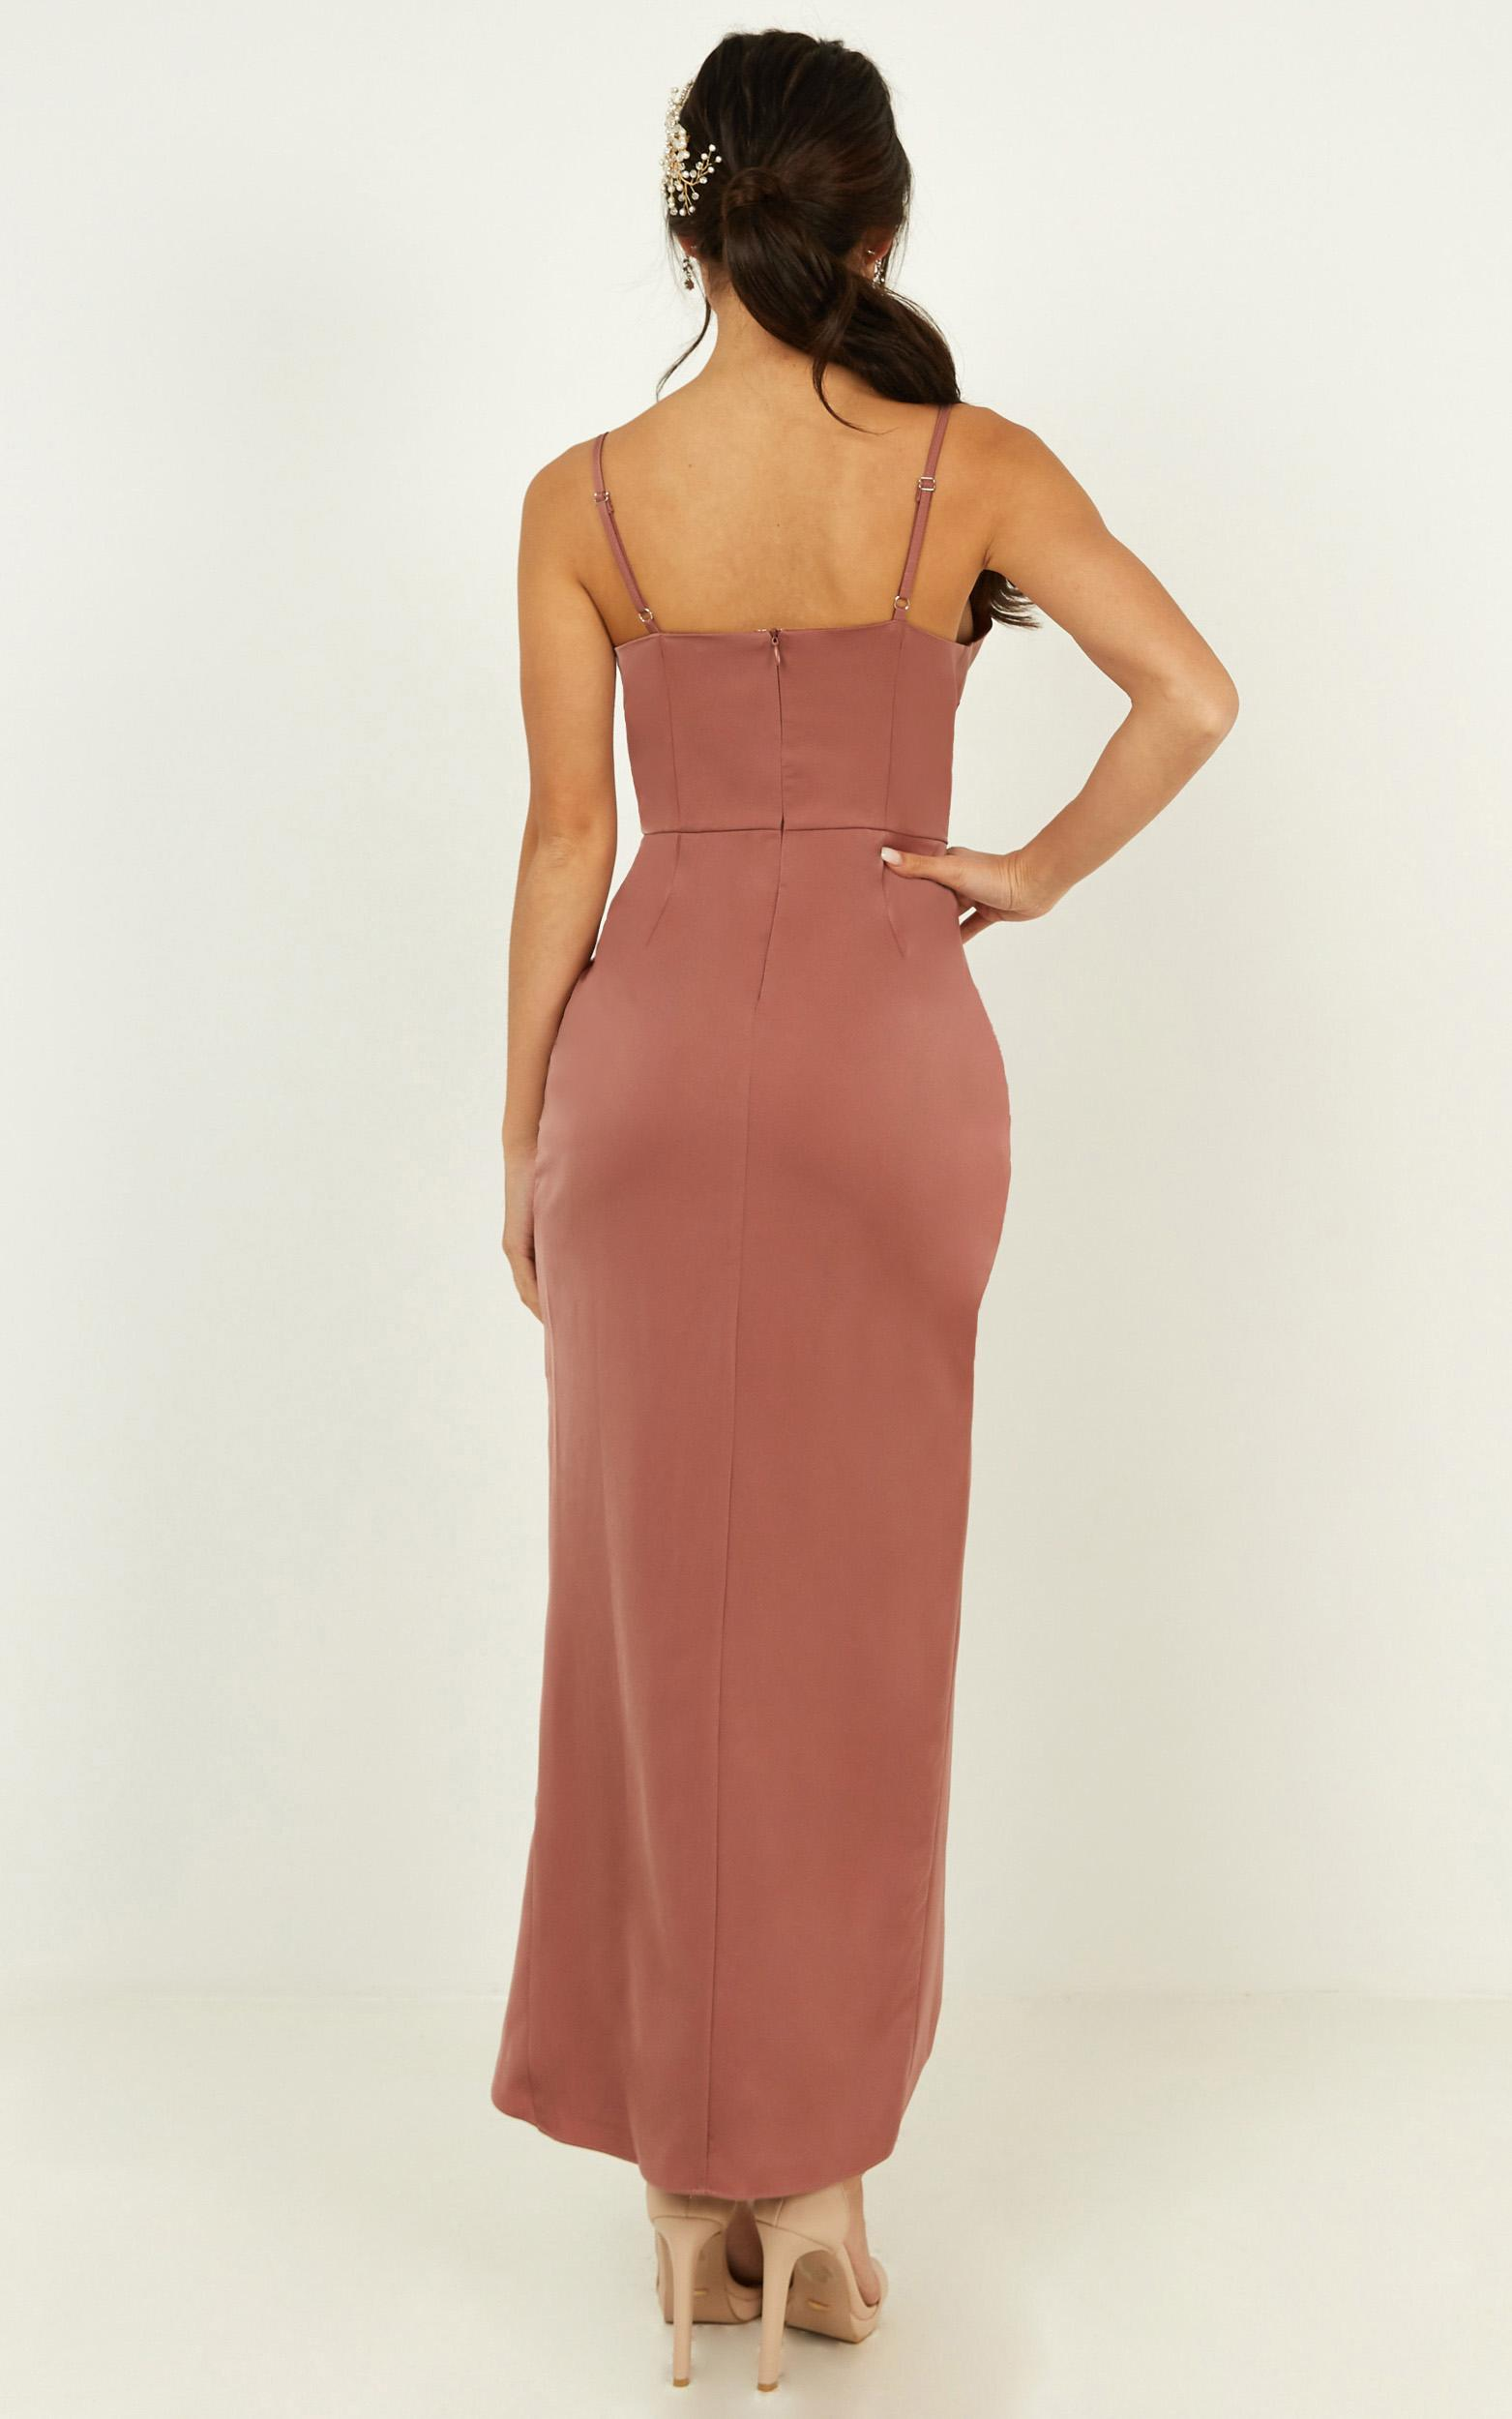 Shes a dreamer dress in dusty rose - 20 (XXXXL), Pink, hi-res image number null